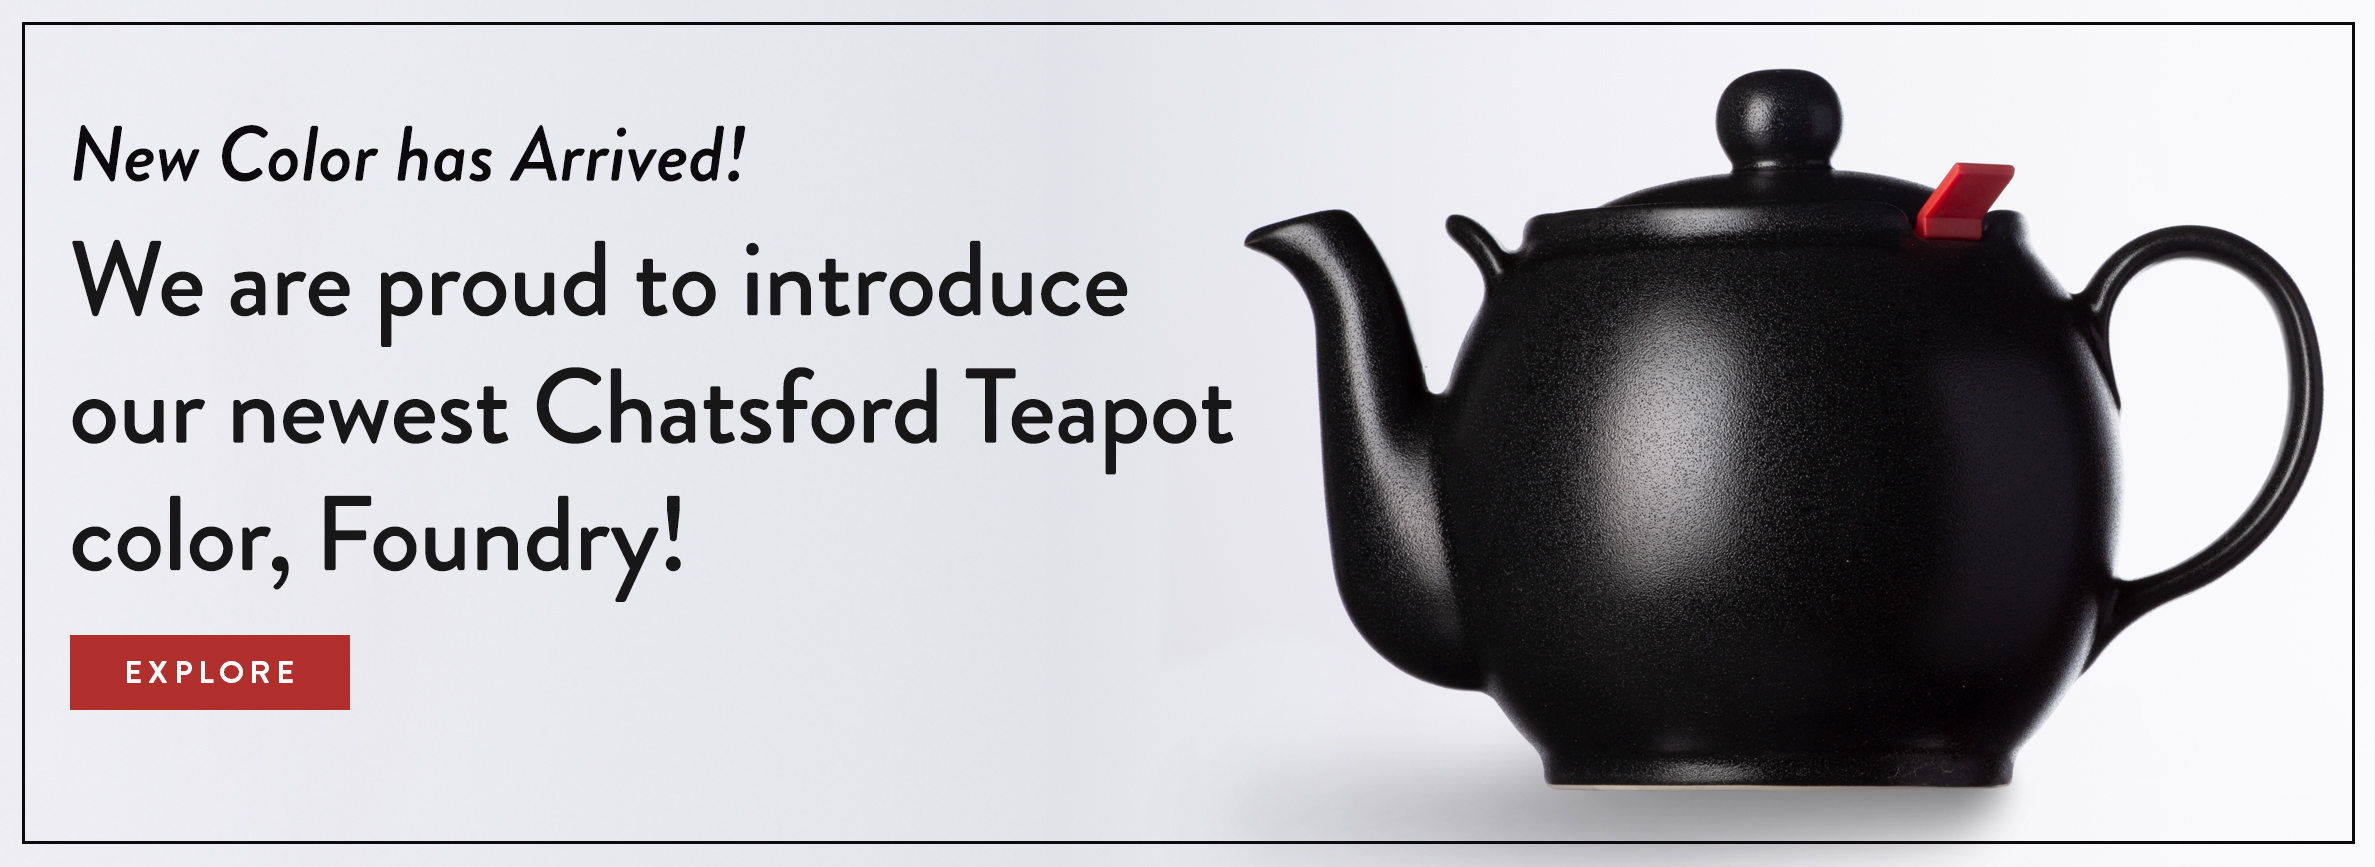 Chatsford Teapot Foundry